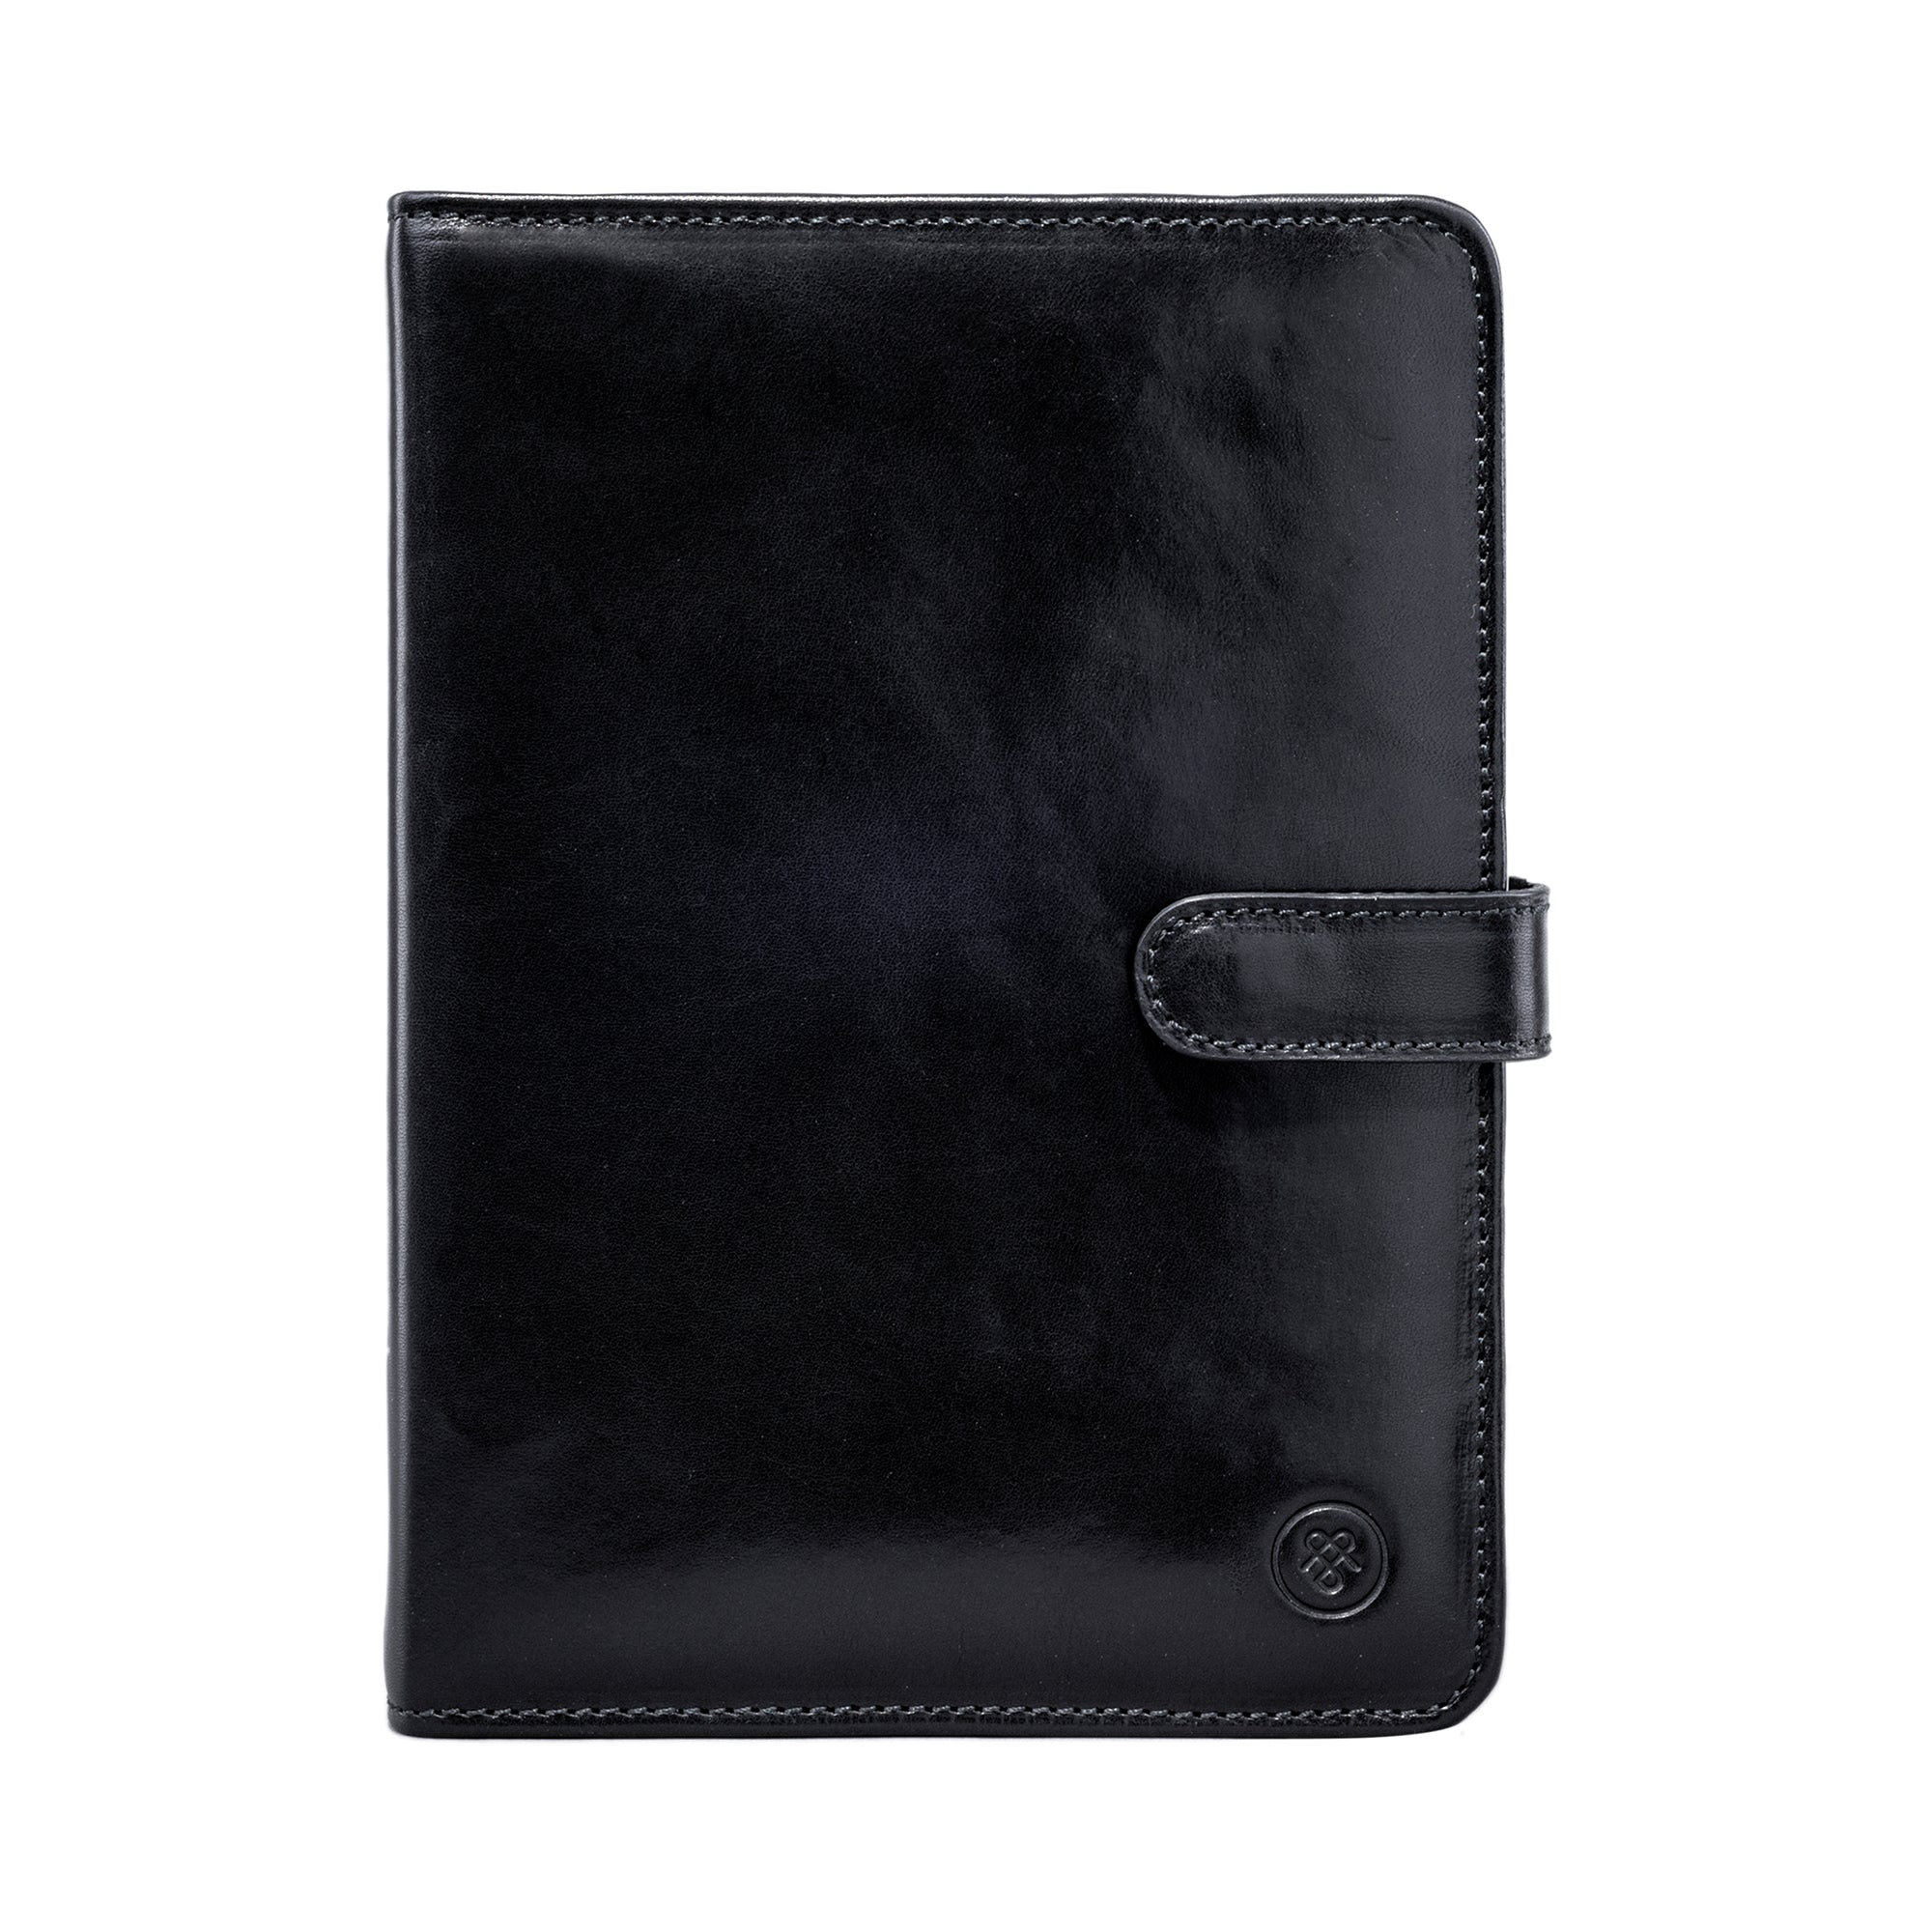 Image 1 of the Black Leather Address Book